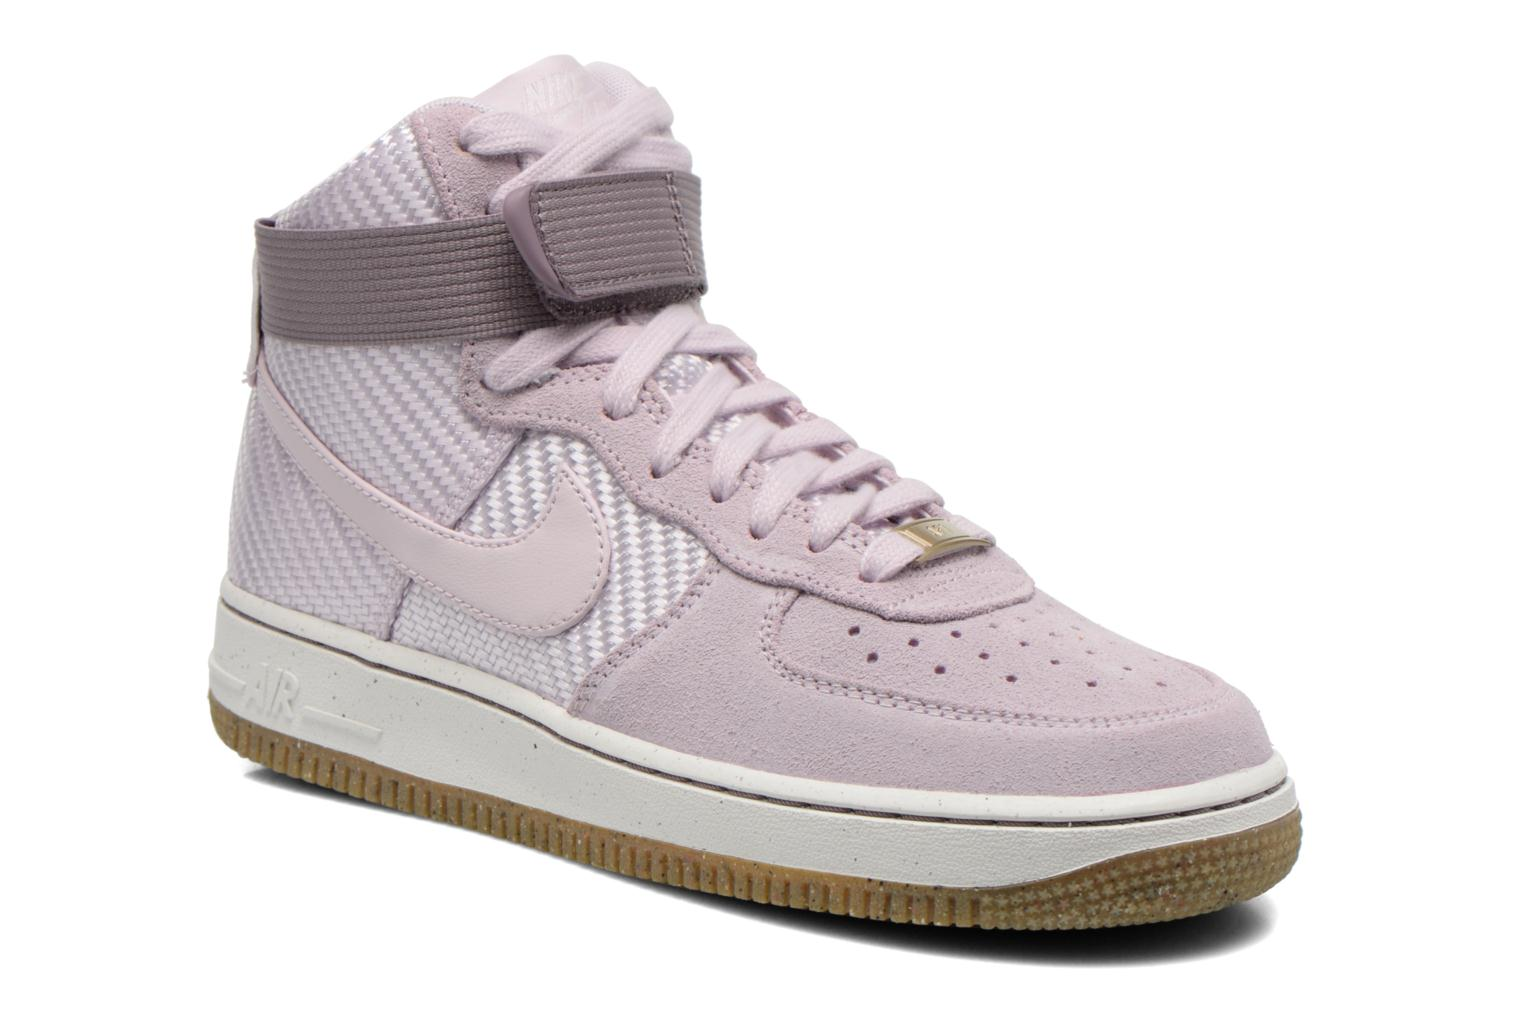 Baskets Nike Wmns Air Force 1 Hi Prm Violet vue détail/paire